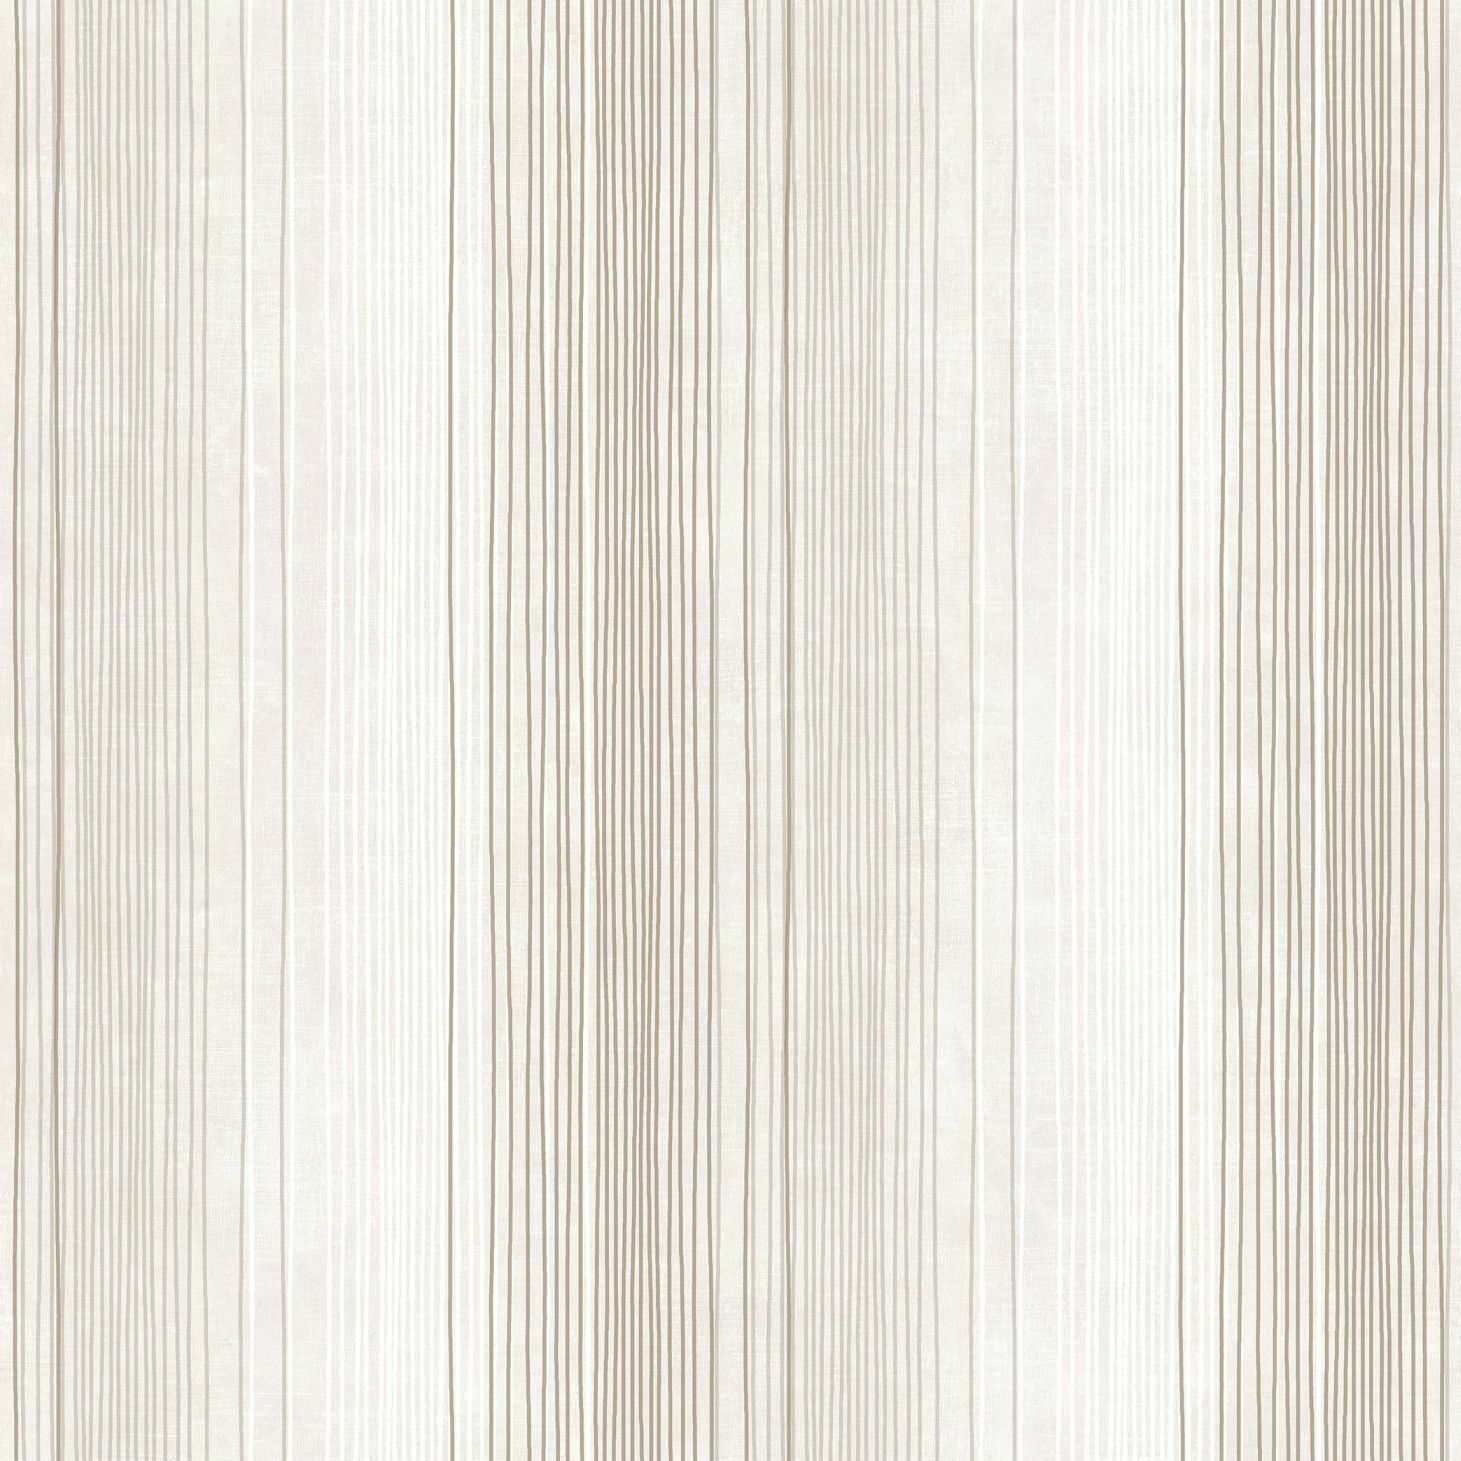 Essener Tapete Simply Stripes 3 St36923 Beige Strisce Righe Tappezzeria in